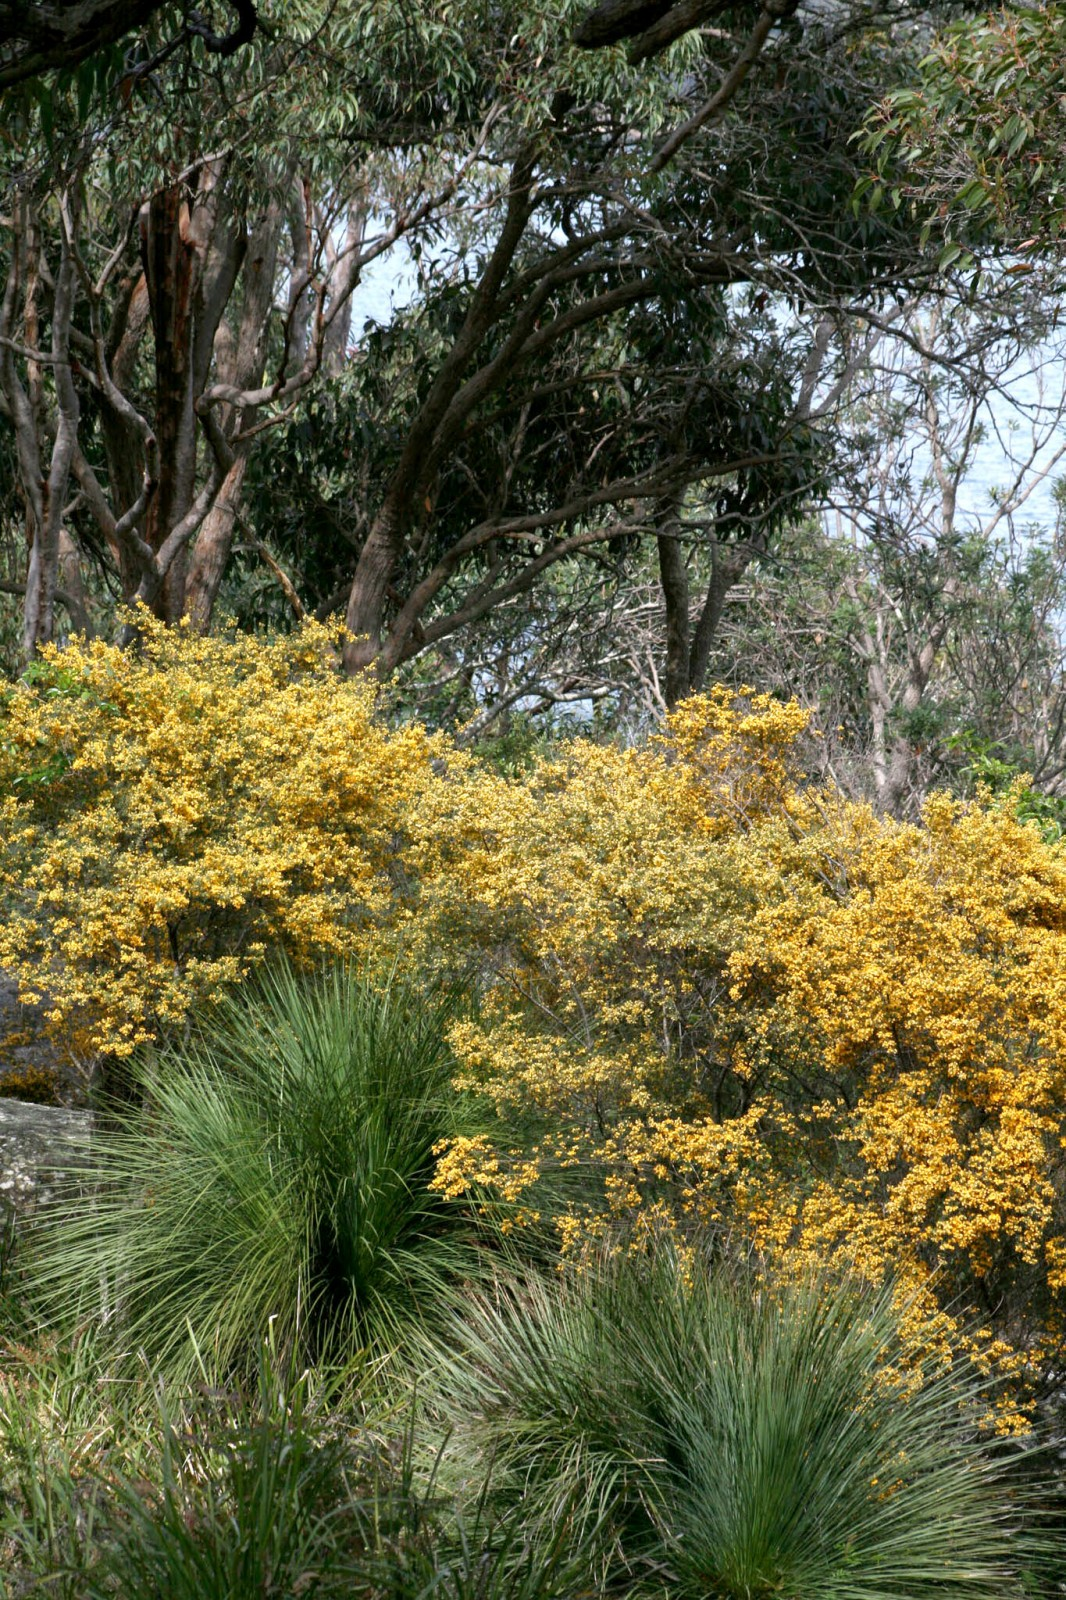 Natural vegetation and Eucalypt woodland and forests such as this would have once blanketed much of Sydney prior to European settlement.